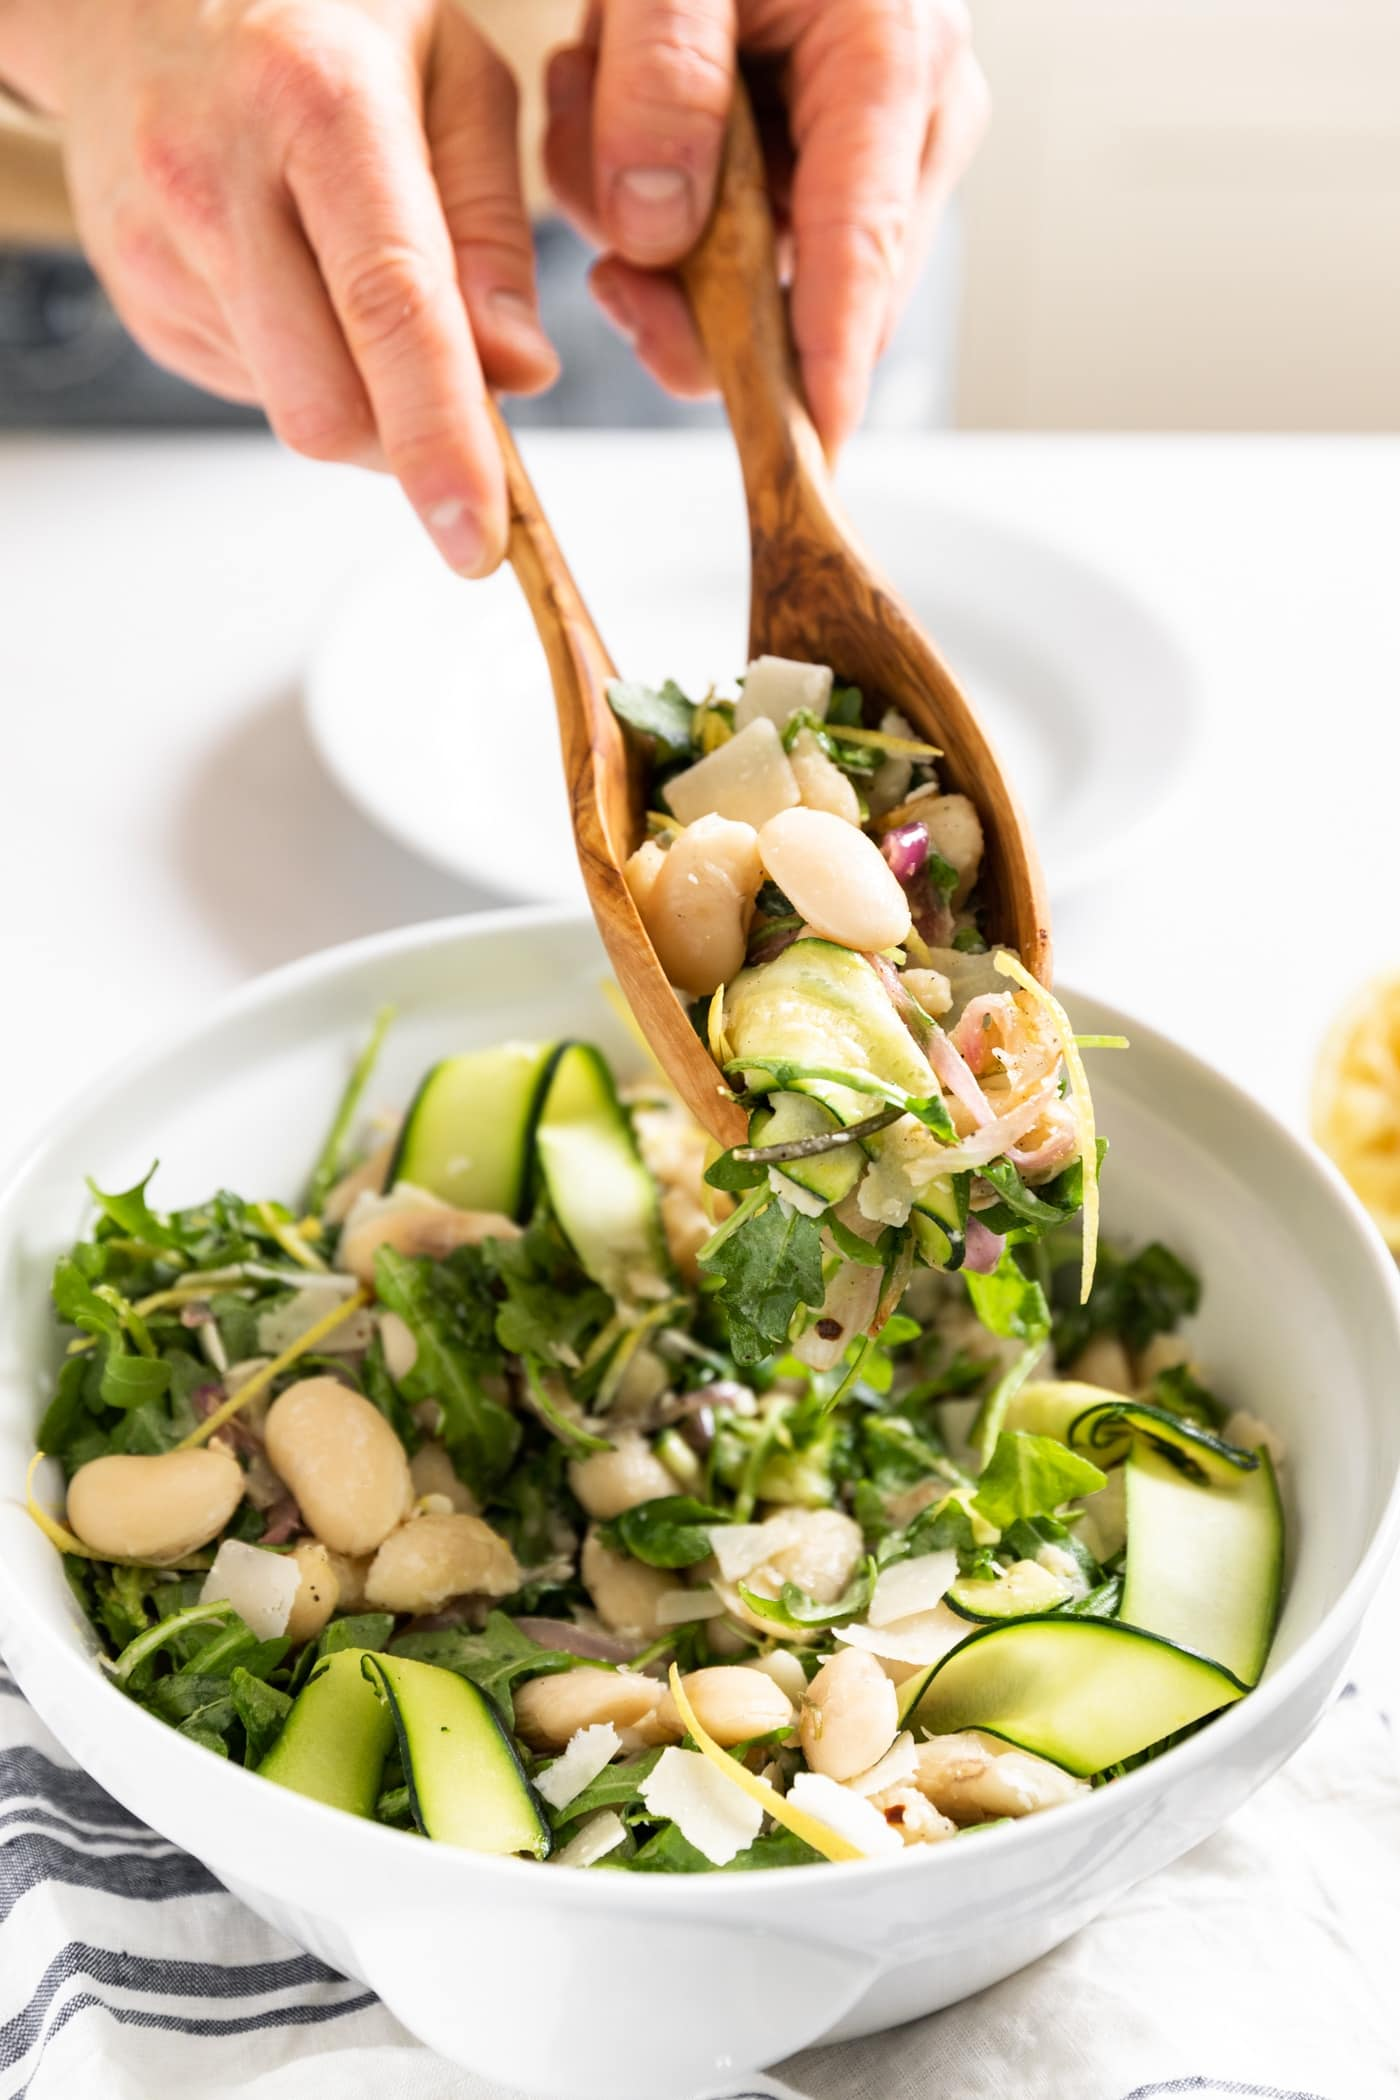 Close up view of large white bowl with two wood tongs holding a combination of white beans and greens